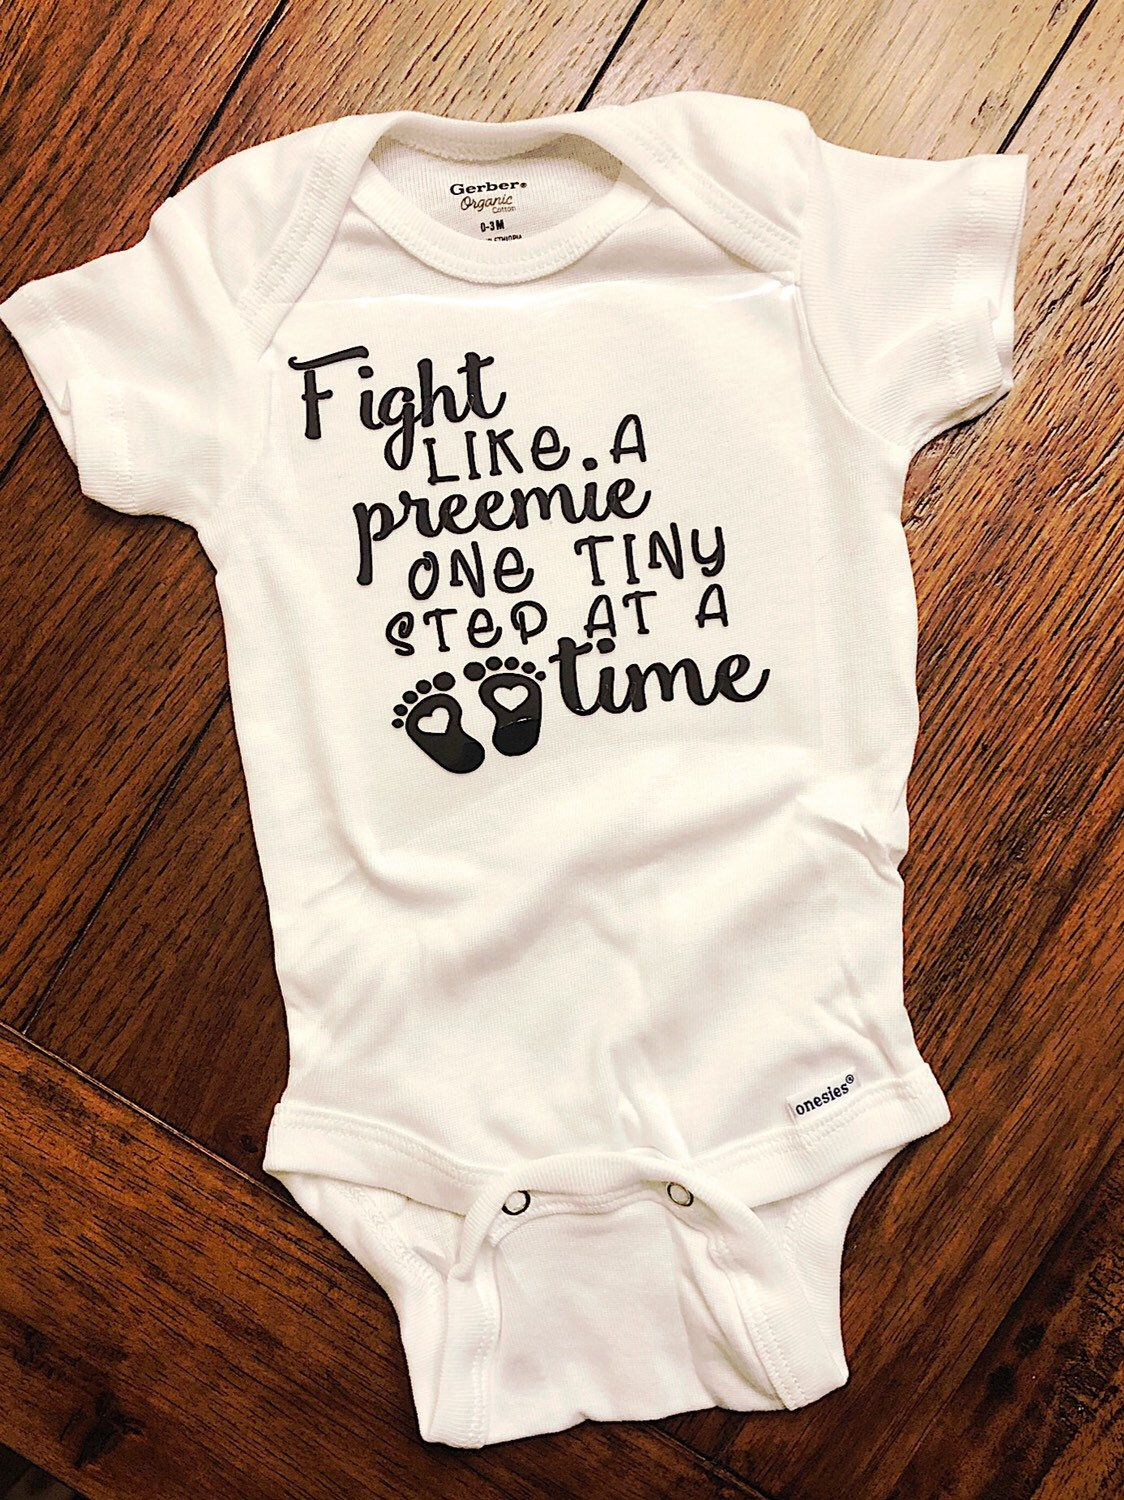 Mommy/'s Boy 4 Piece Baby Clothing Outfit 4 Micro Preemie and Newborn Sizes up to 3 Months Adorable Coming Home Outfit.